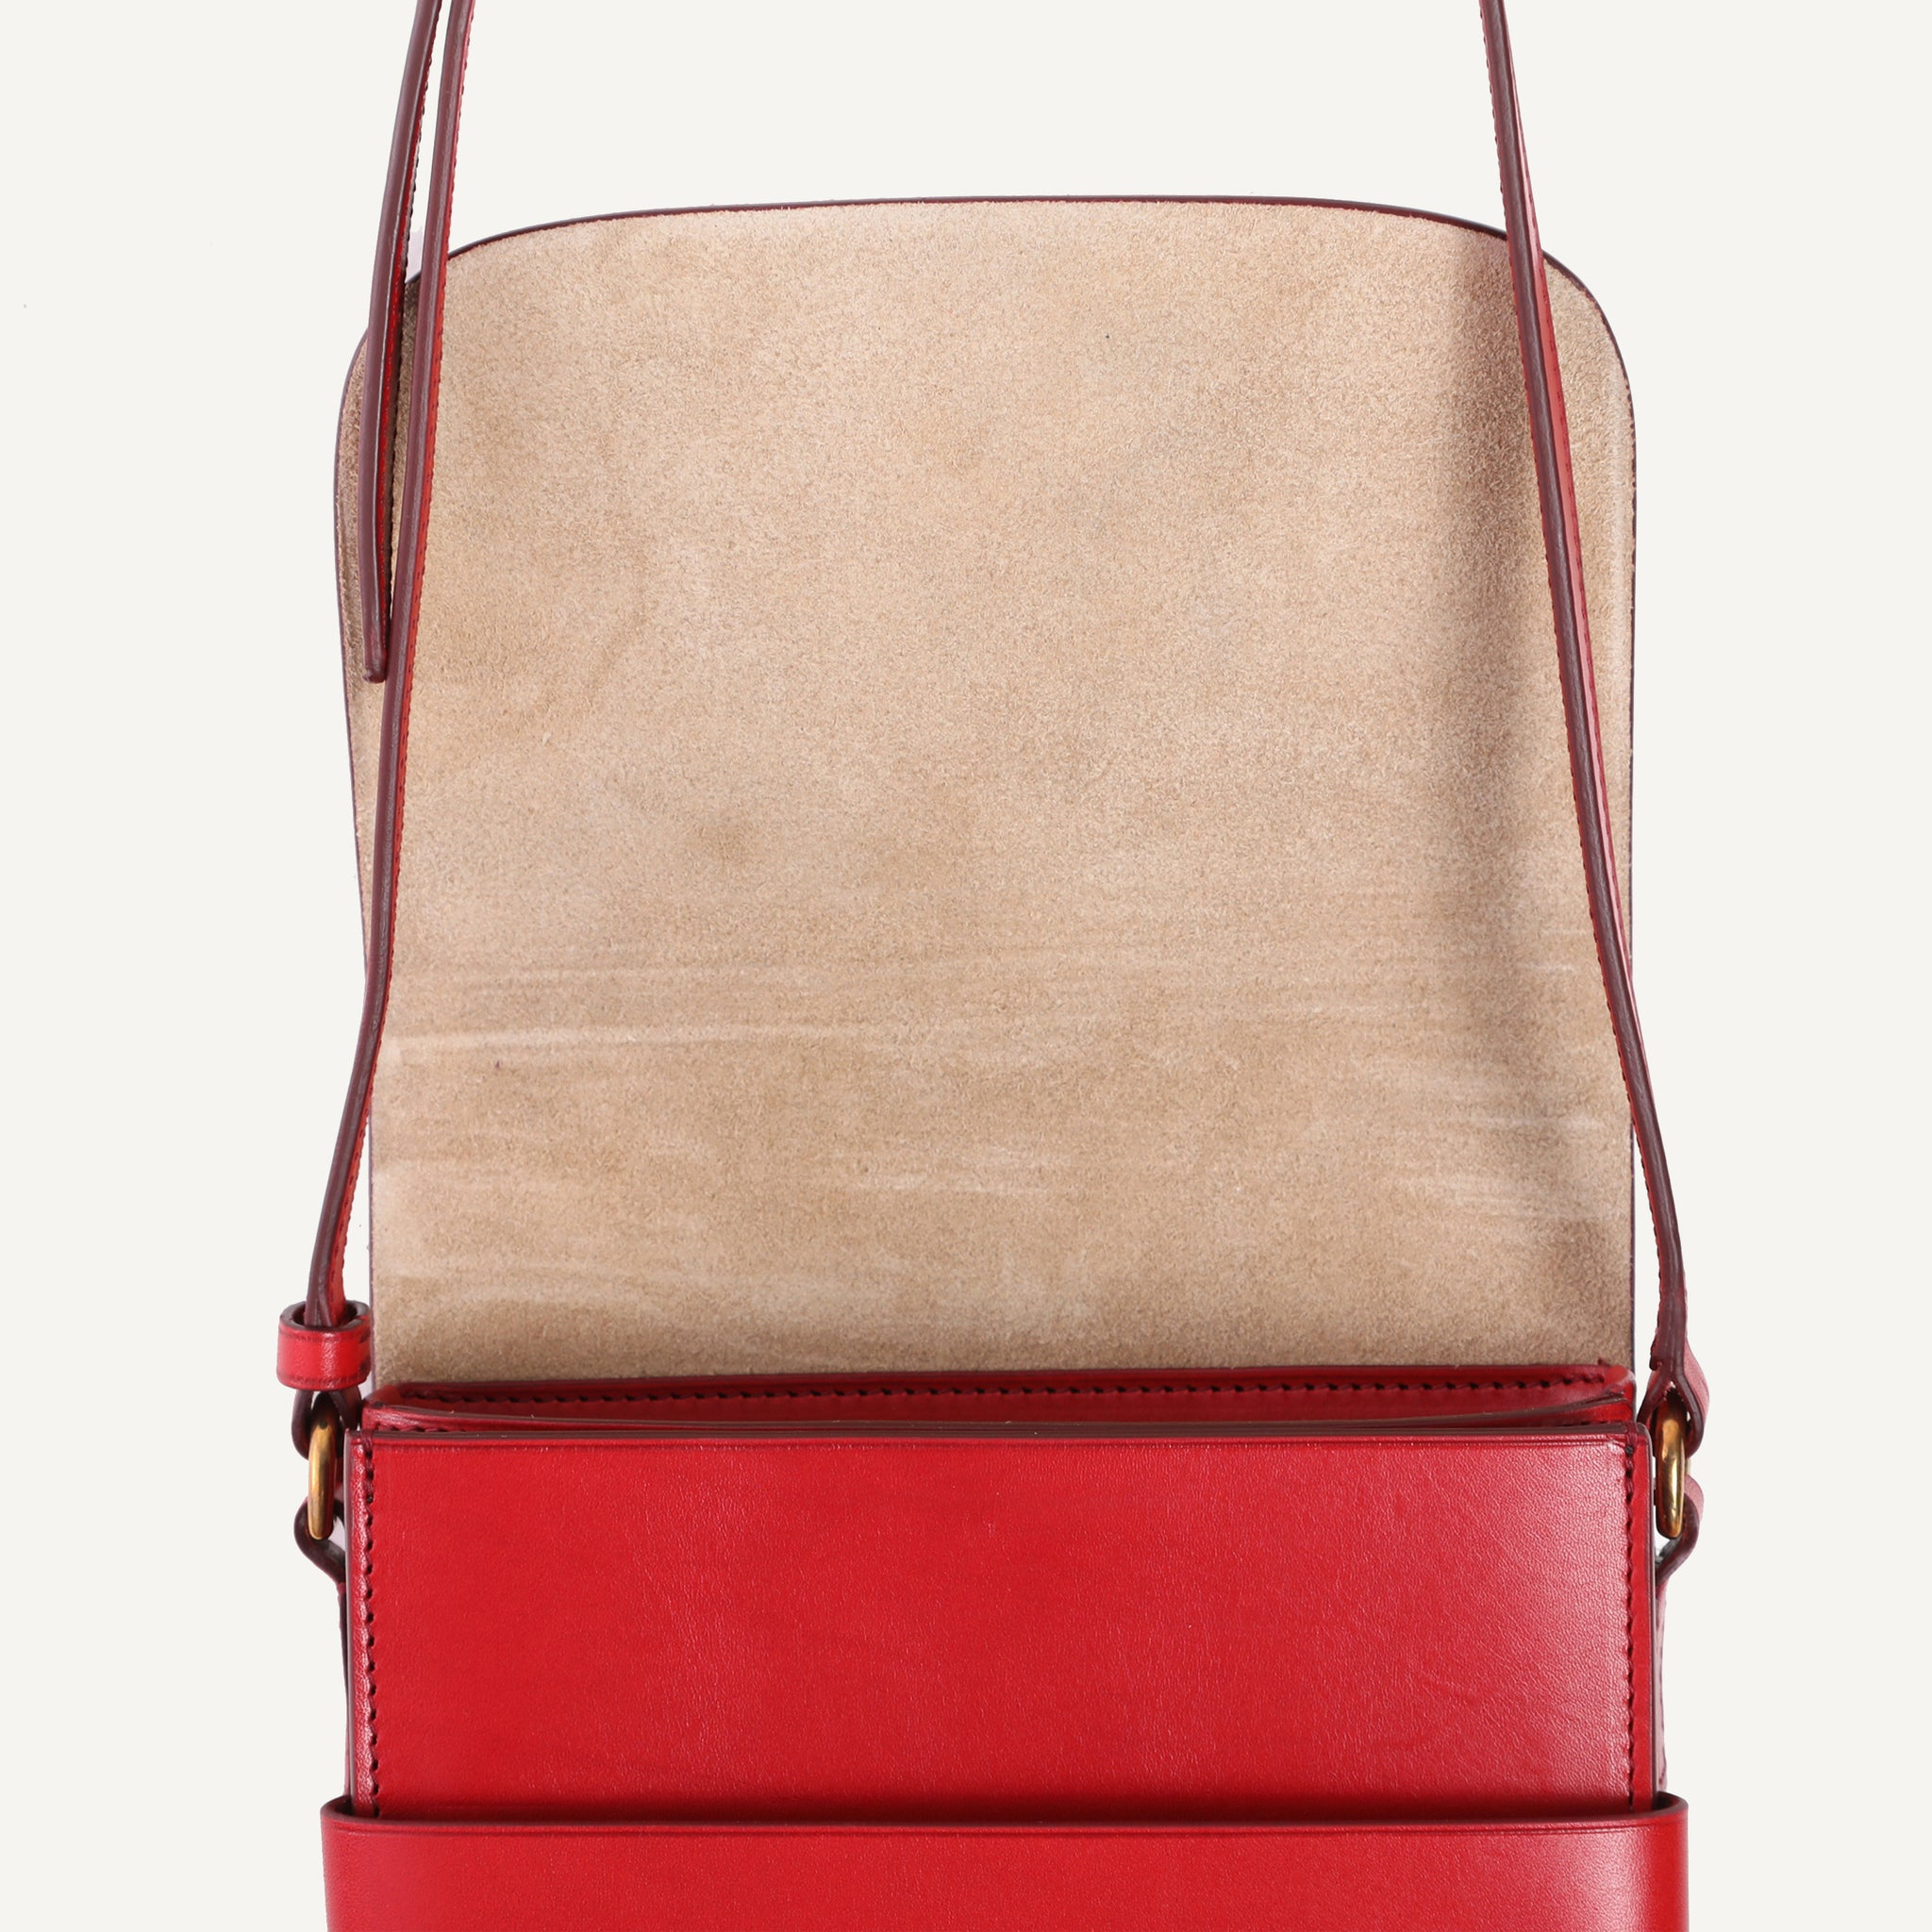 INGRID BAG SMALL